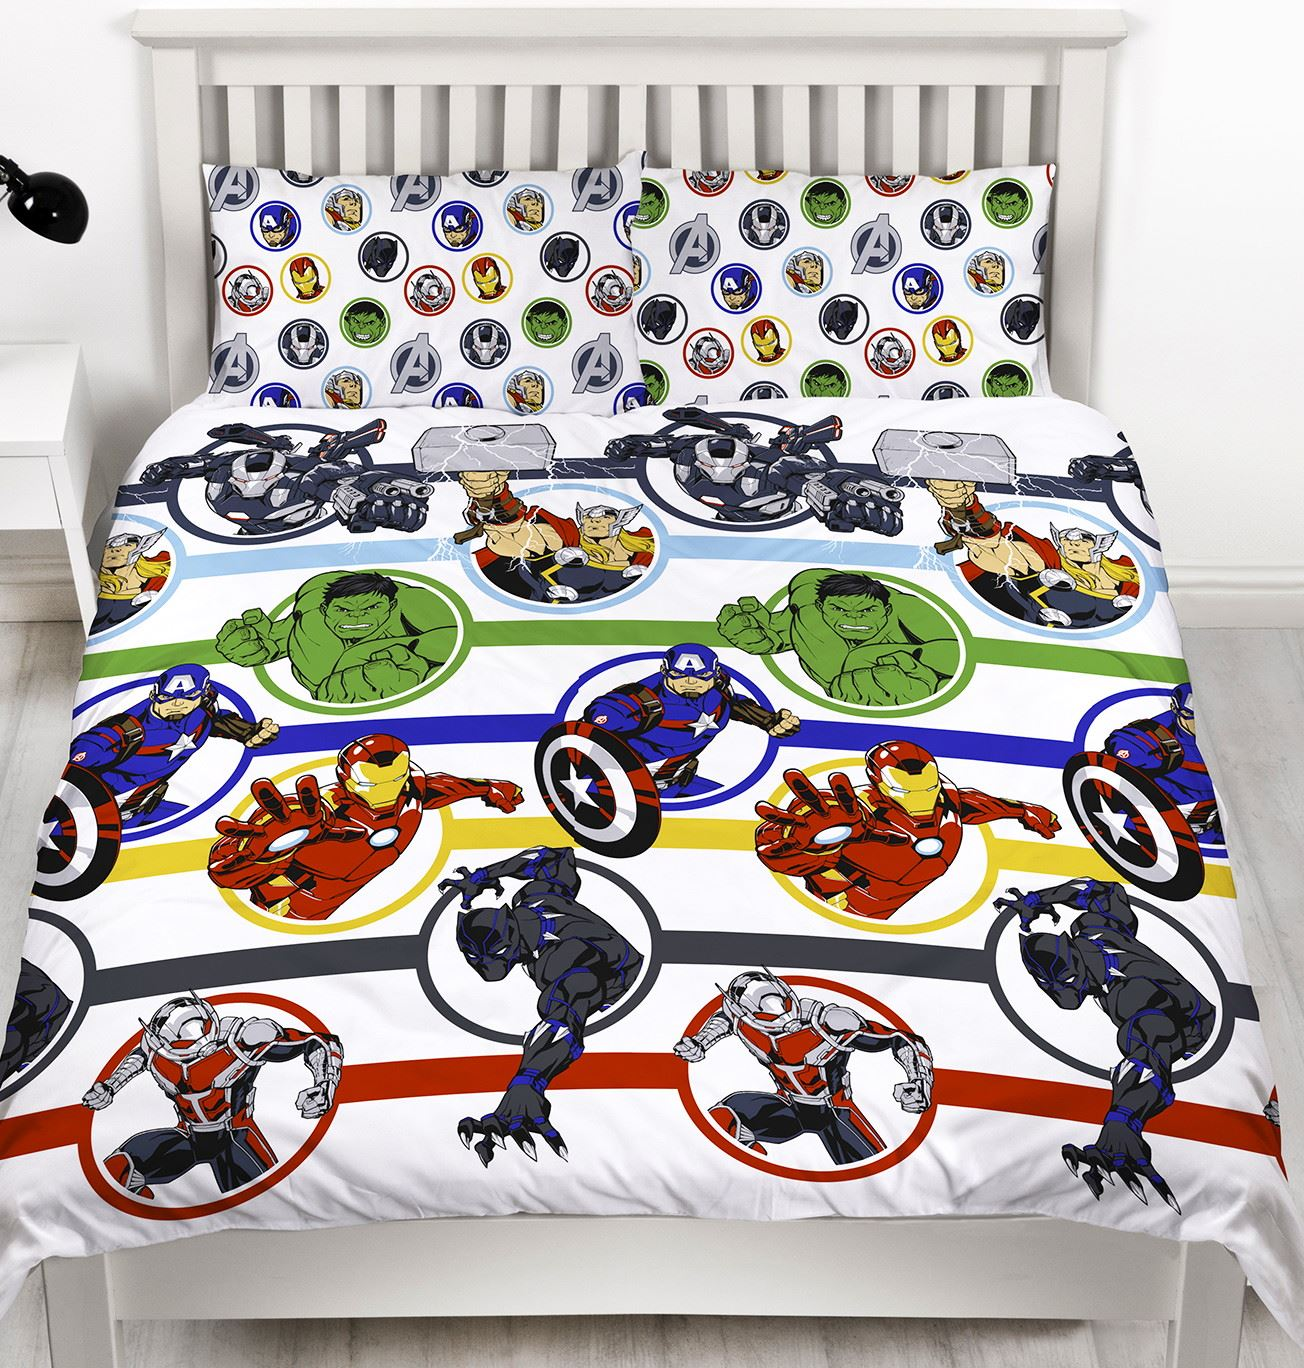 Official-Marvel-Comics-Avengers-Licensed-Duvet-Covers-Single-Double thumbnail 11